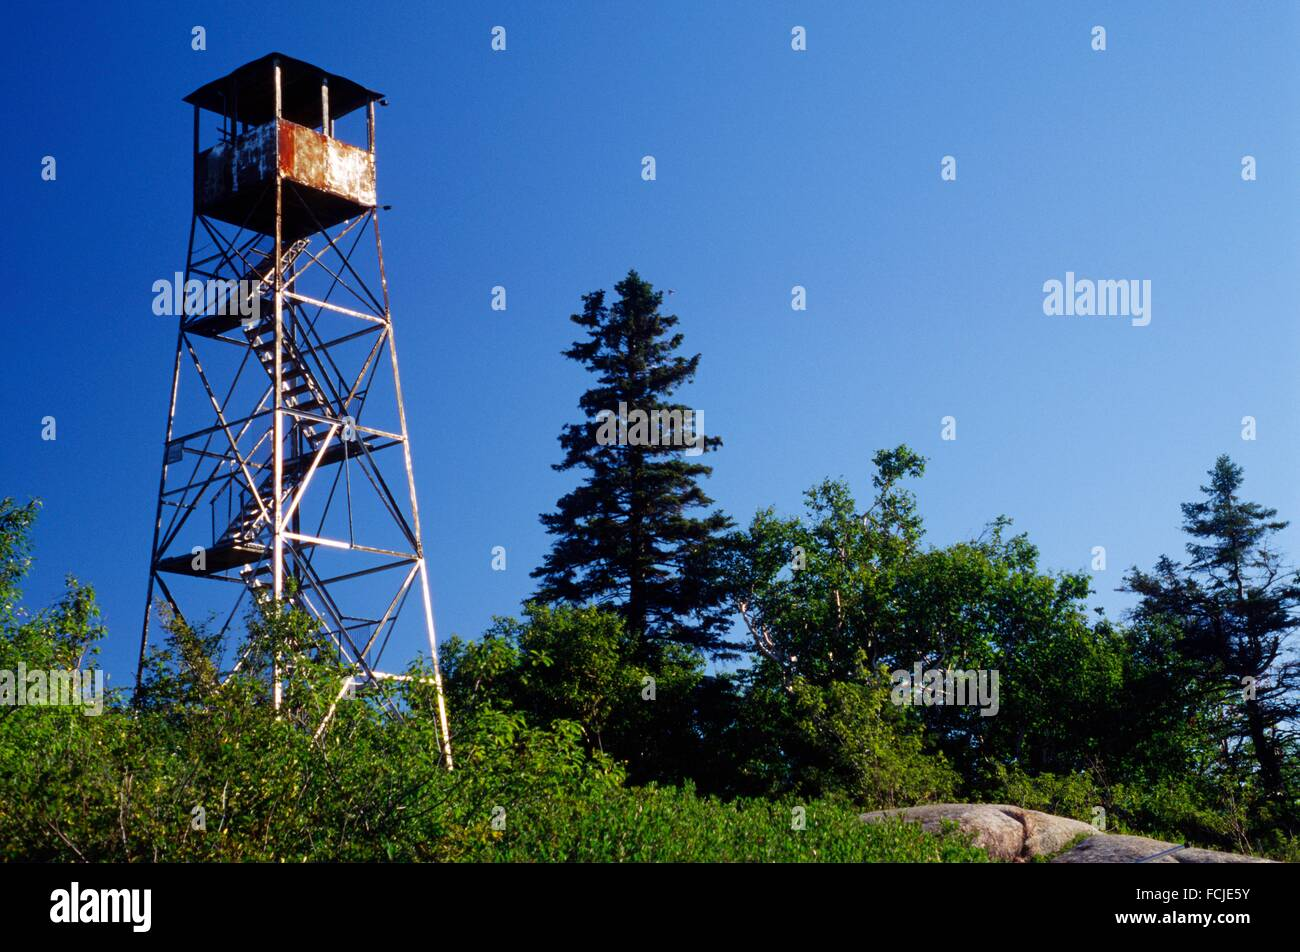 Lookout on Poke-O-Moonshine Mountain, Adirondack Park, New York. Stock Photo